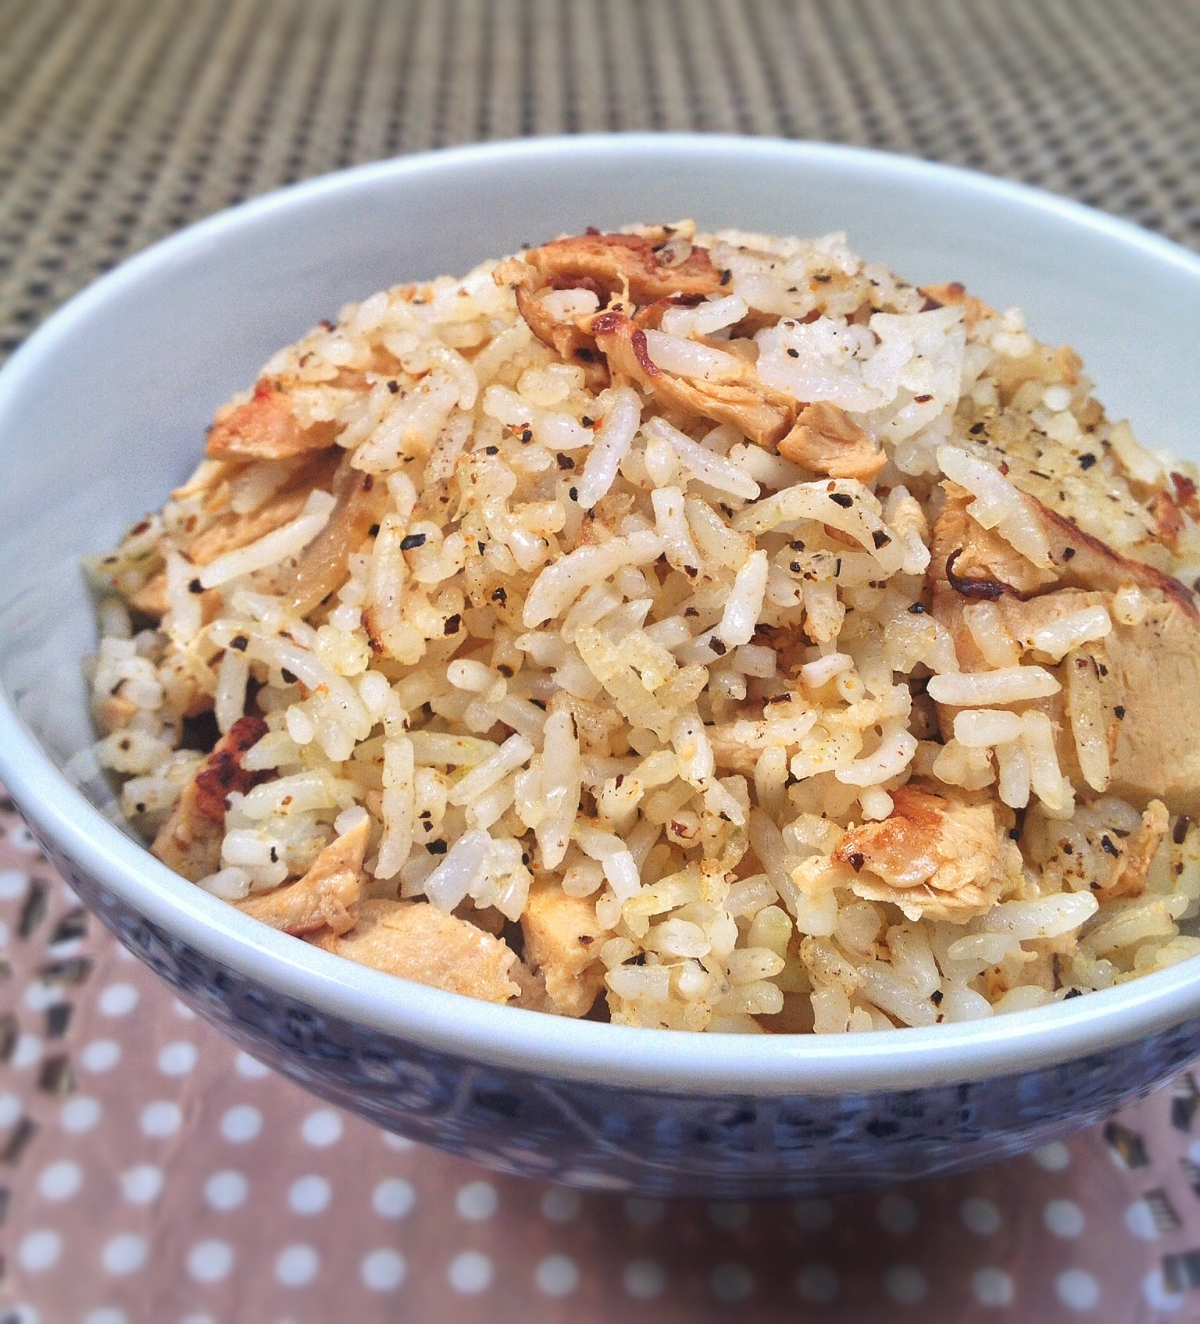 Chick'n Fried Rice